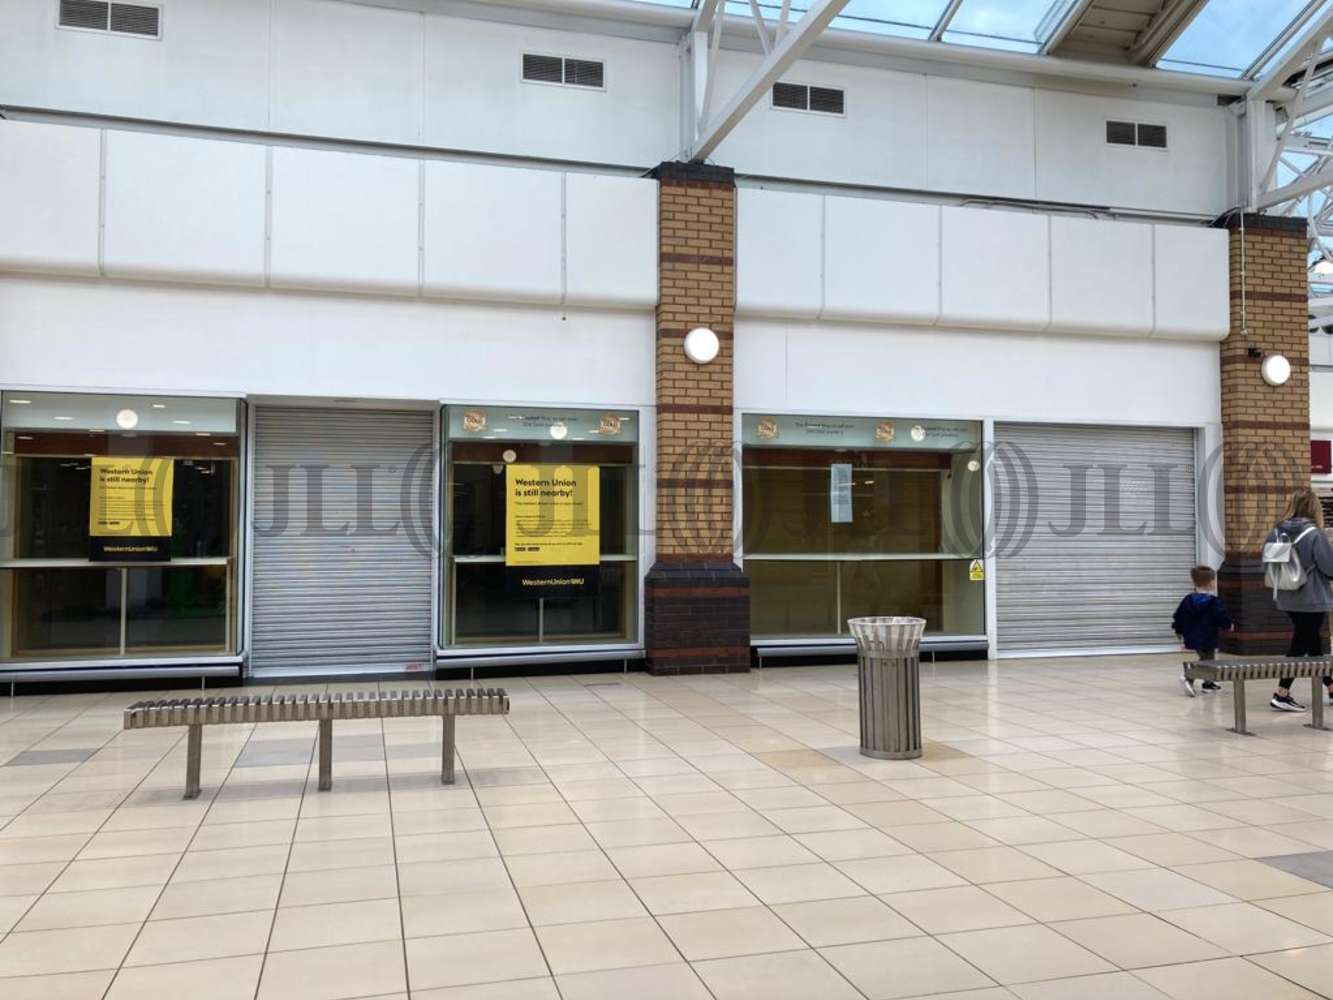 Retail out of town Liverpool, L24 9WA - Units 13-14